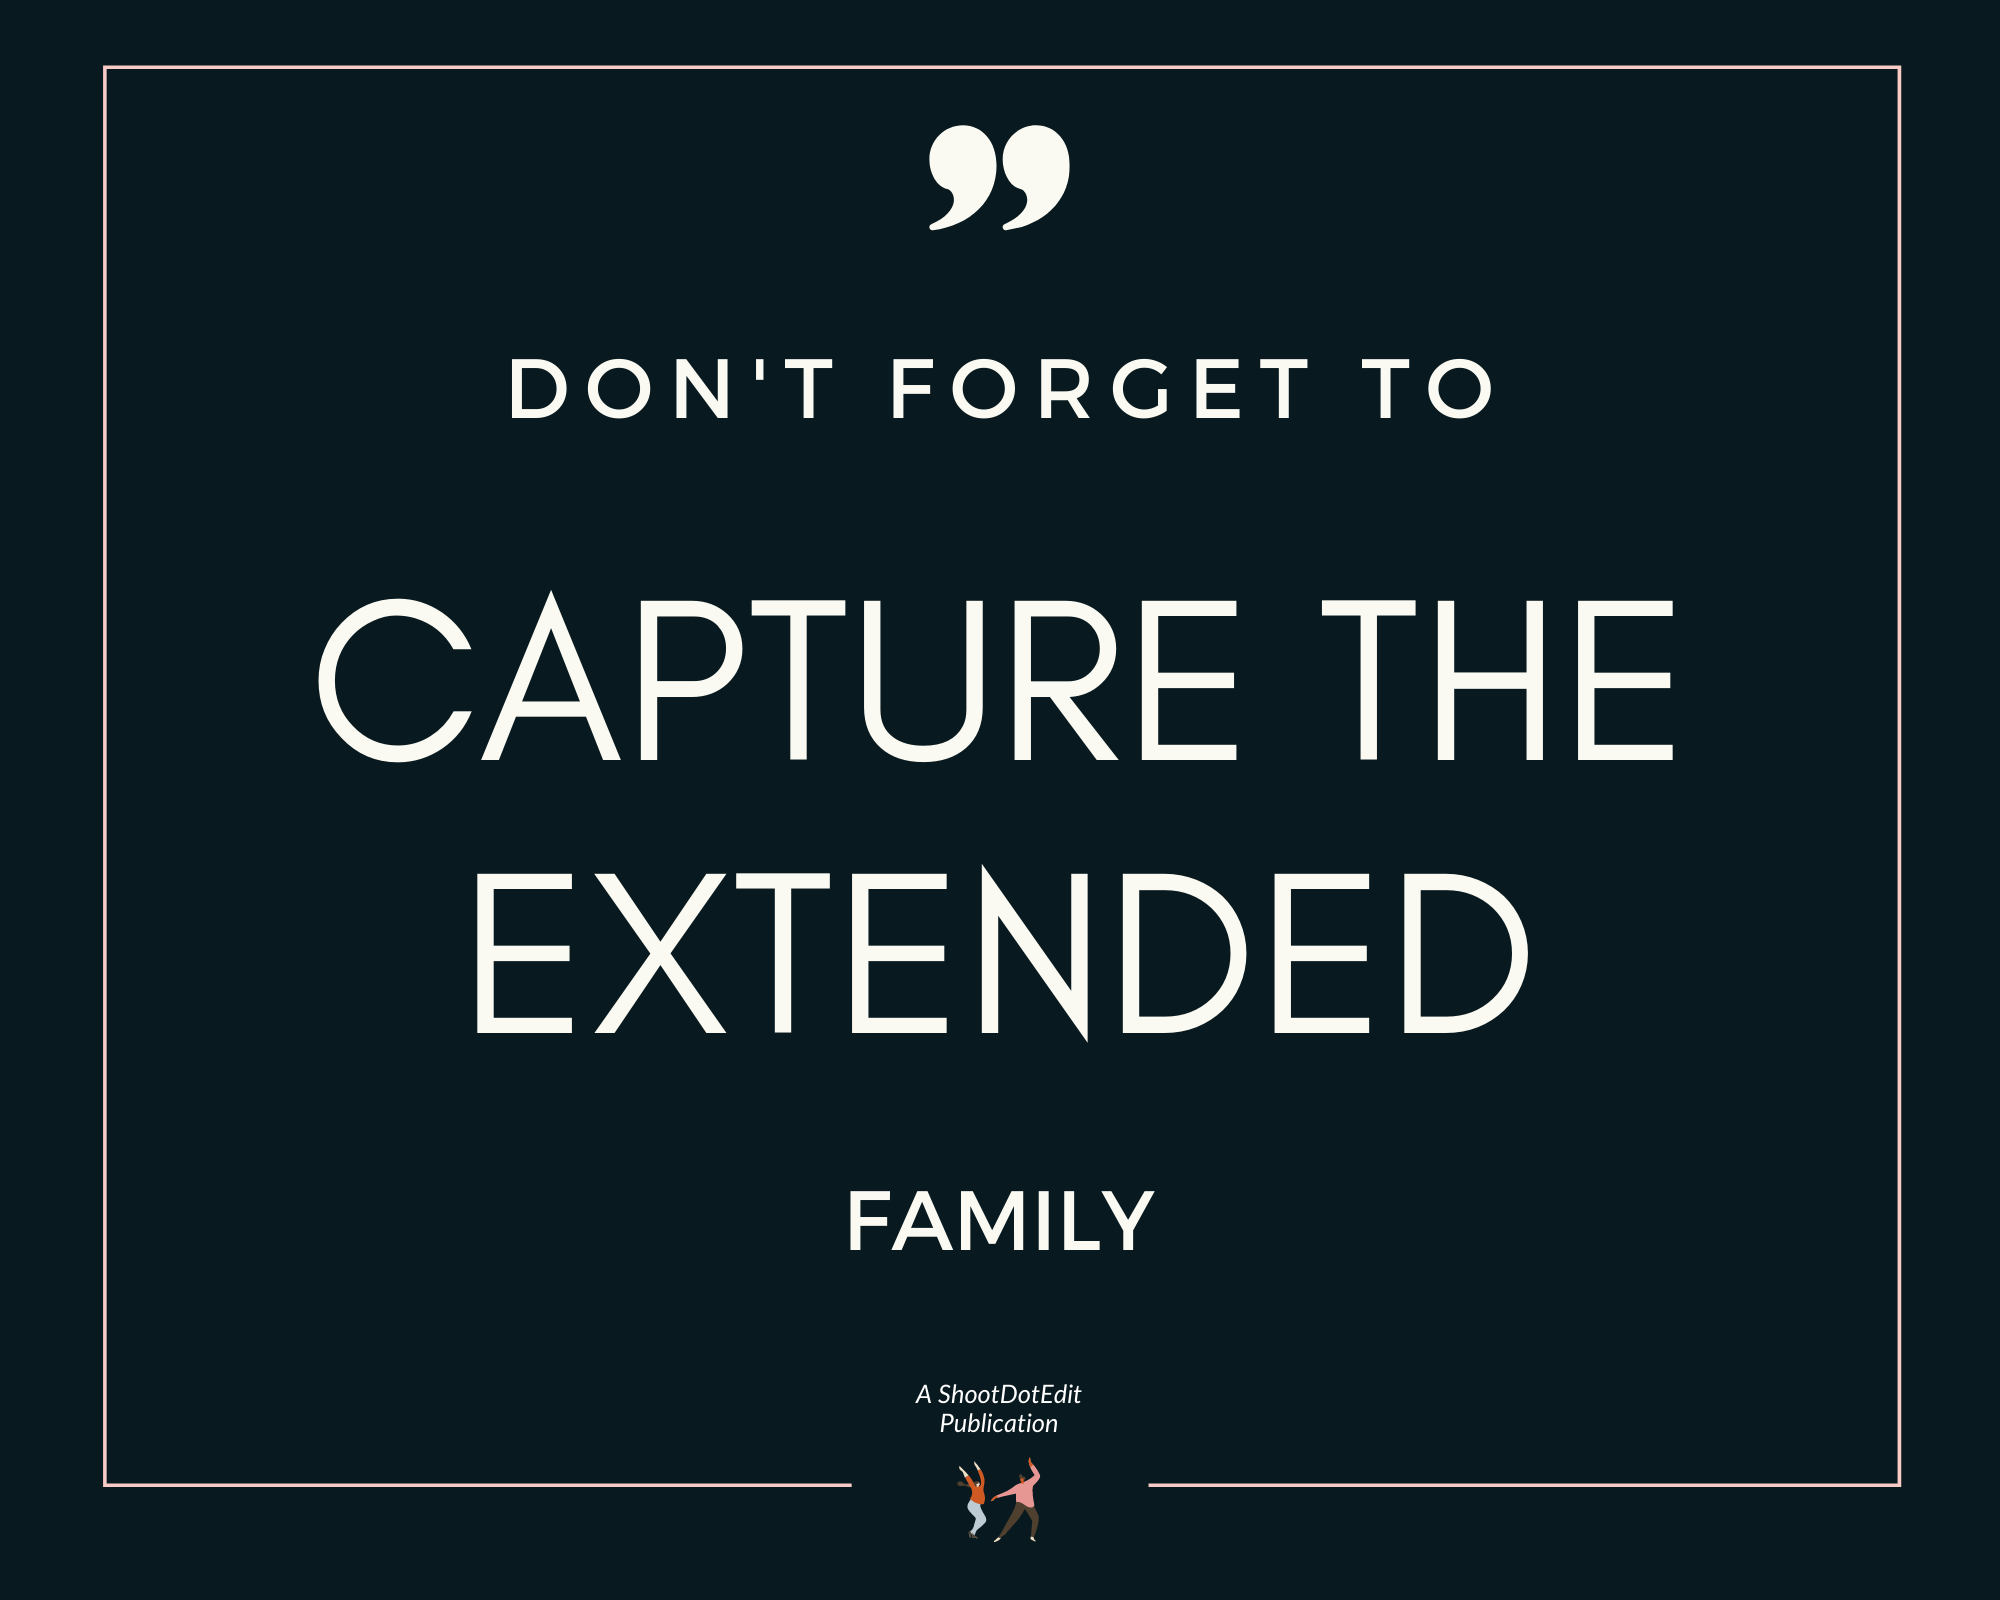 Infographic stating don't forget to capture the extended family